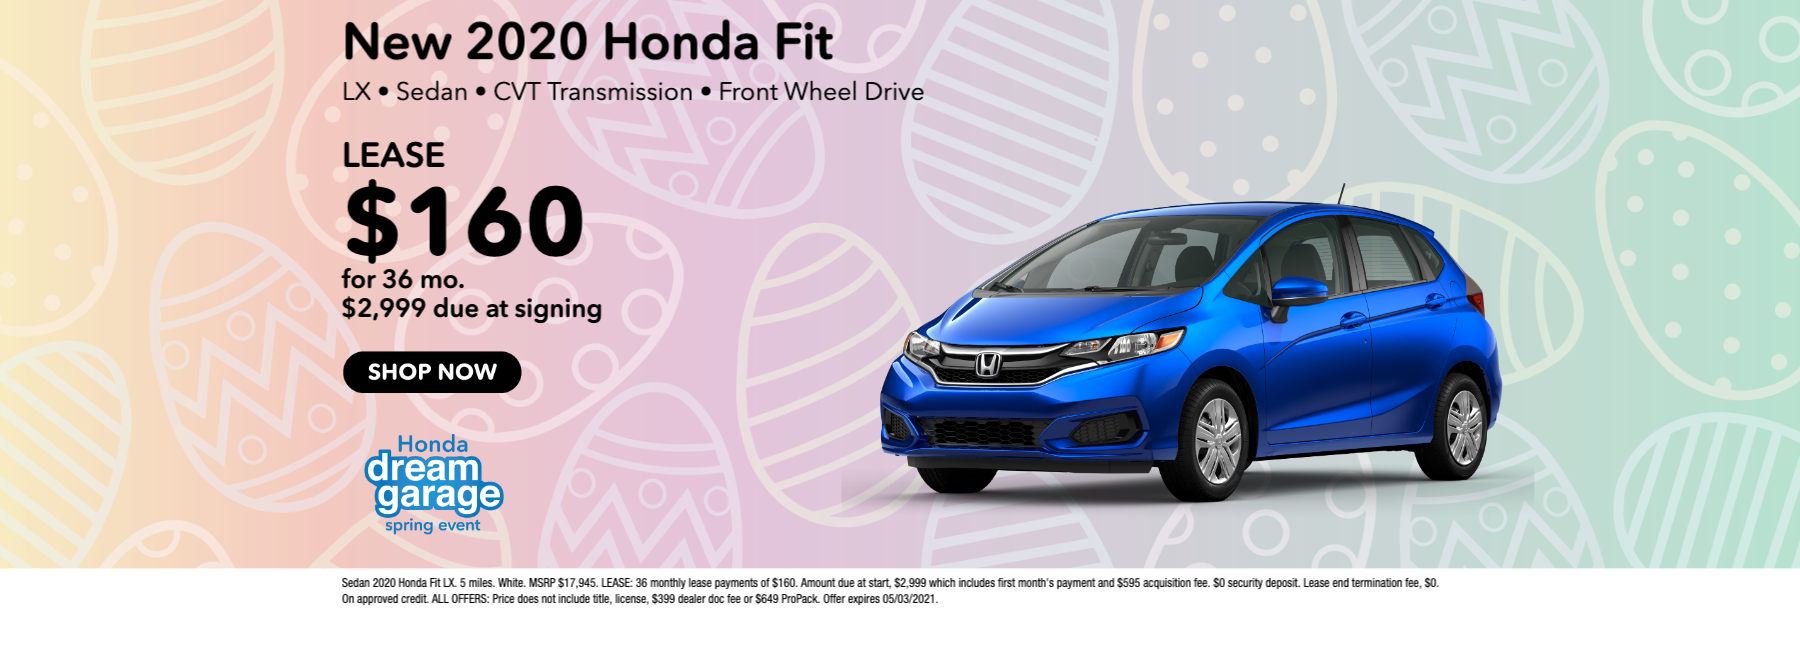 Honda of Great Falls_WF41867_website_3hggk5h47lm731959_honda – bold – black – 1up_scatteredeggs_1800 x 663_2020_honda_fit_lx__0